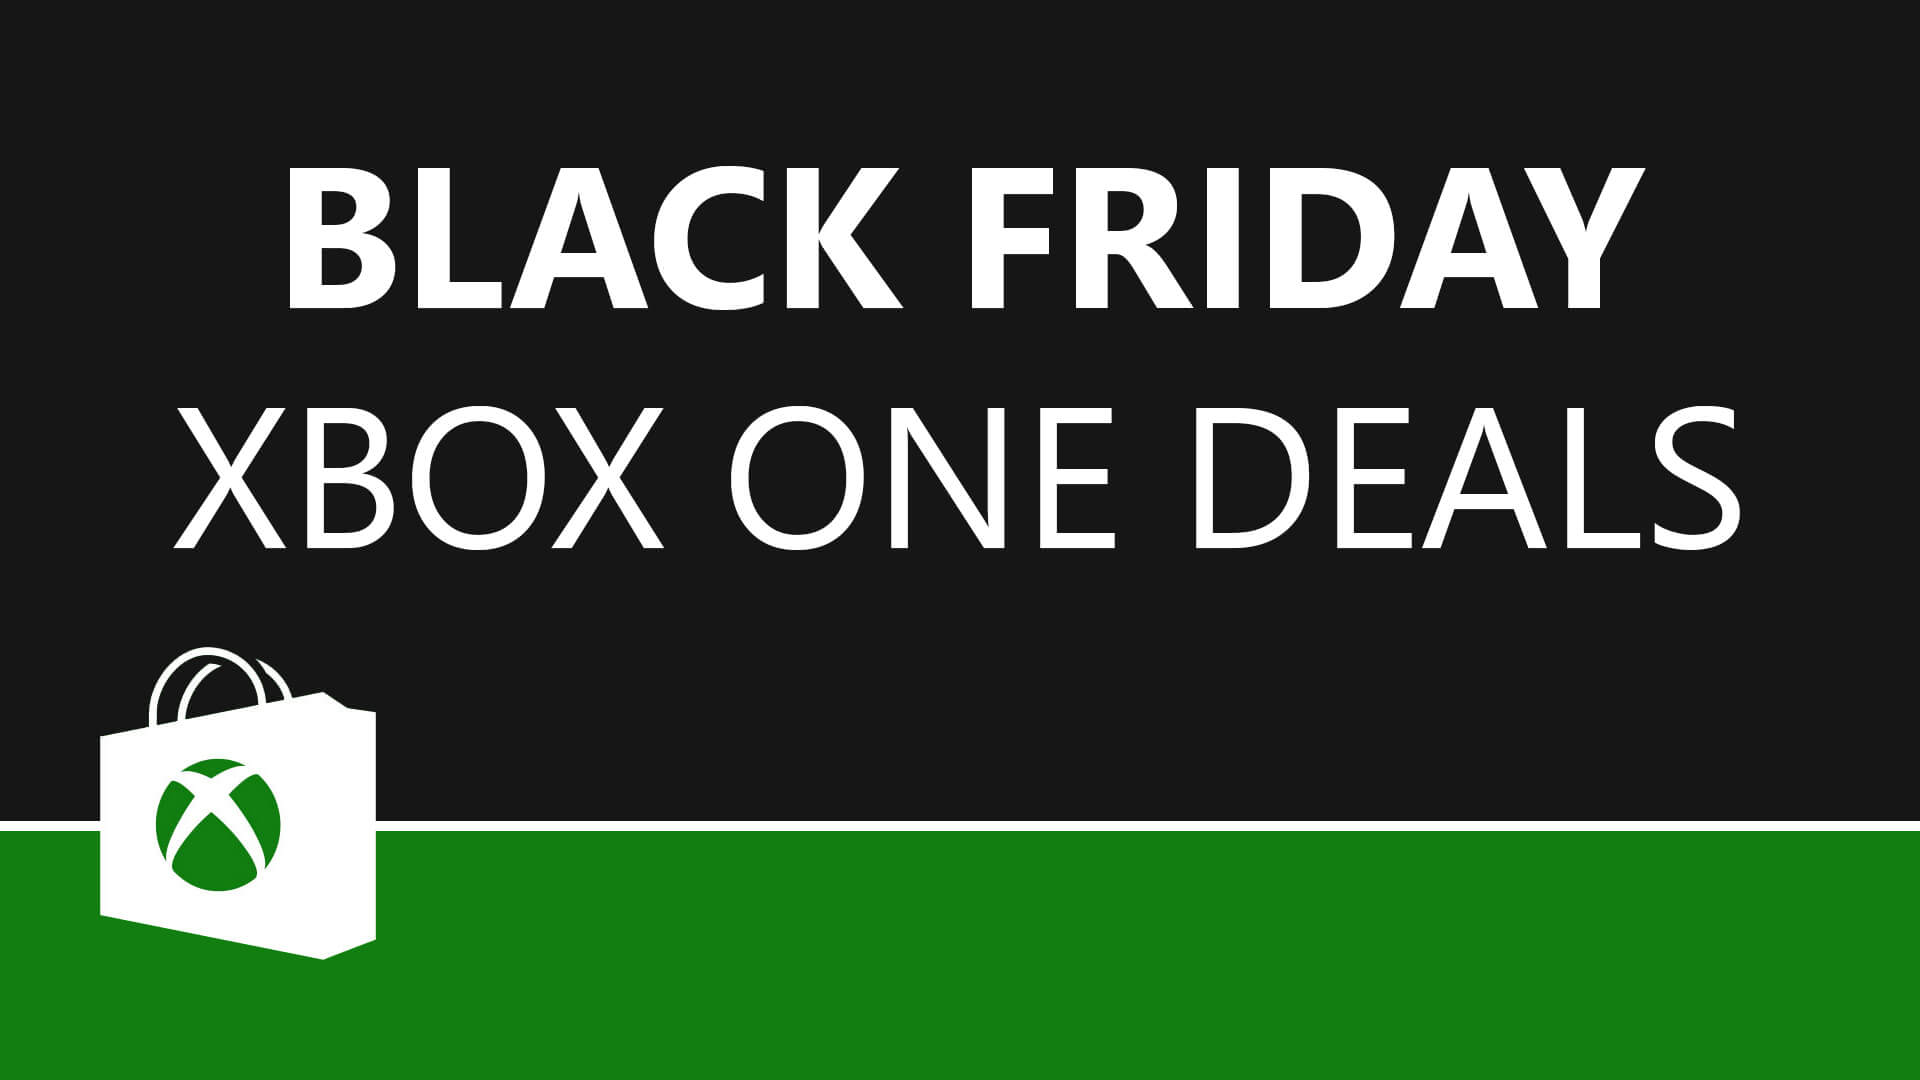 Xbox One Black Friday Deals 2018